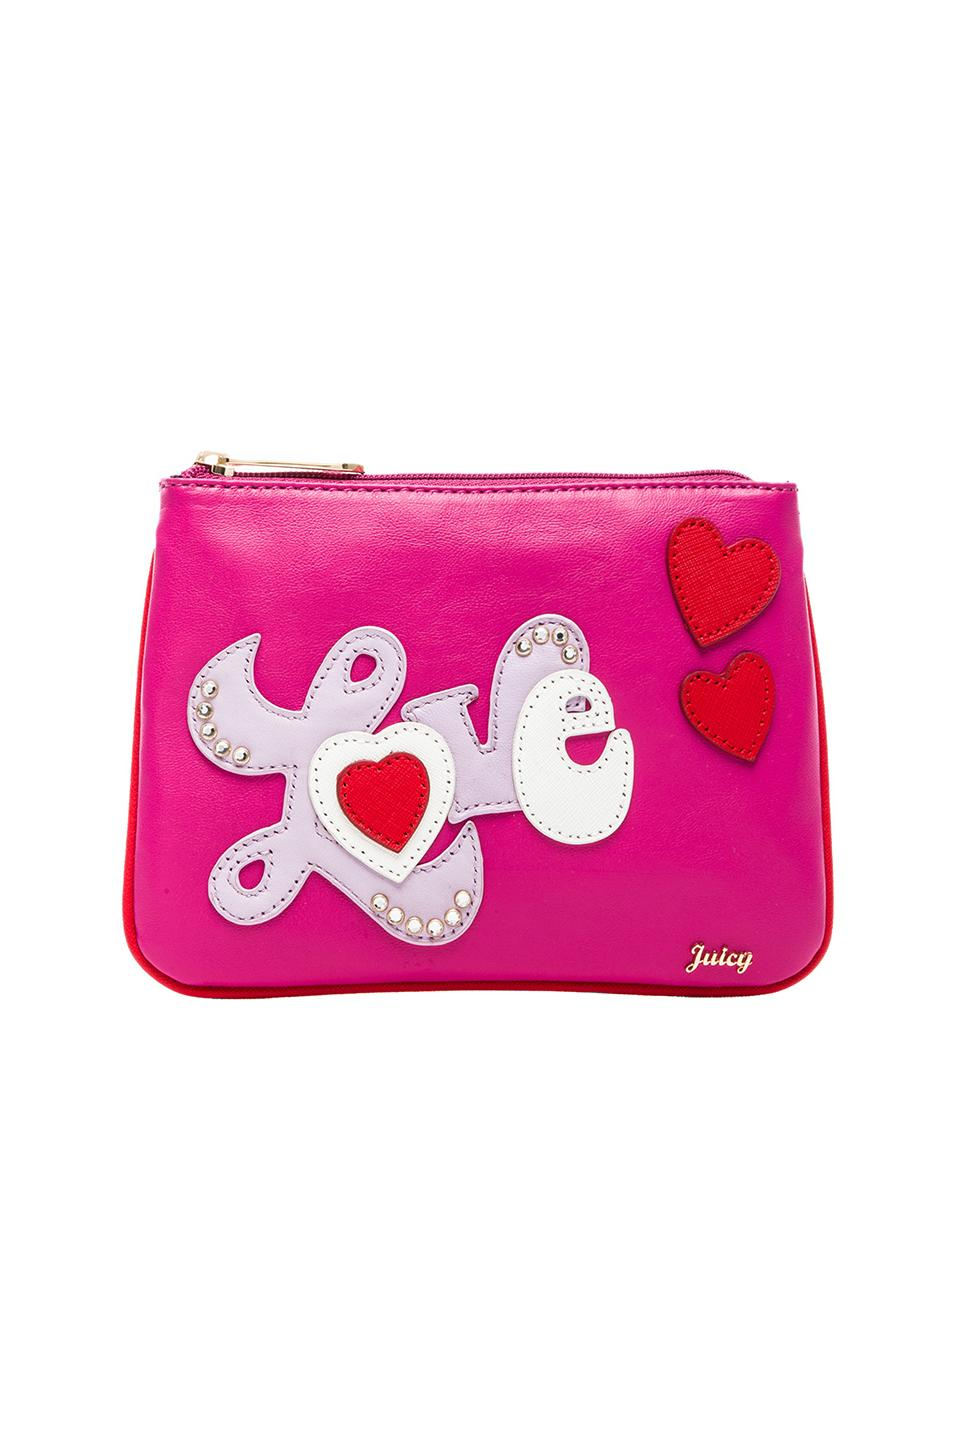 Juicy Couture Juicy in Love Pouch in Cashmere Rose